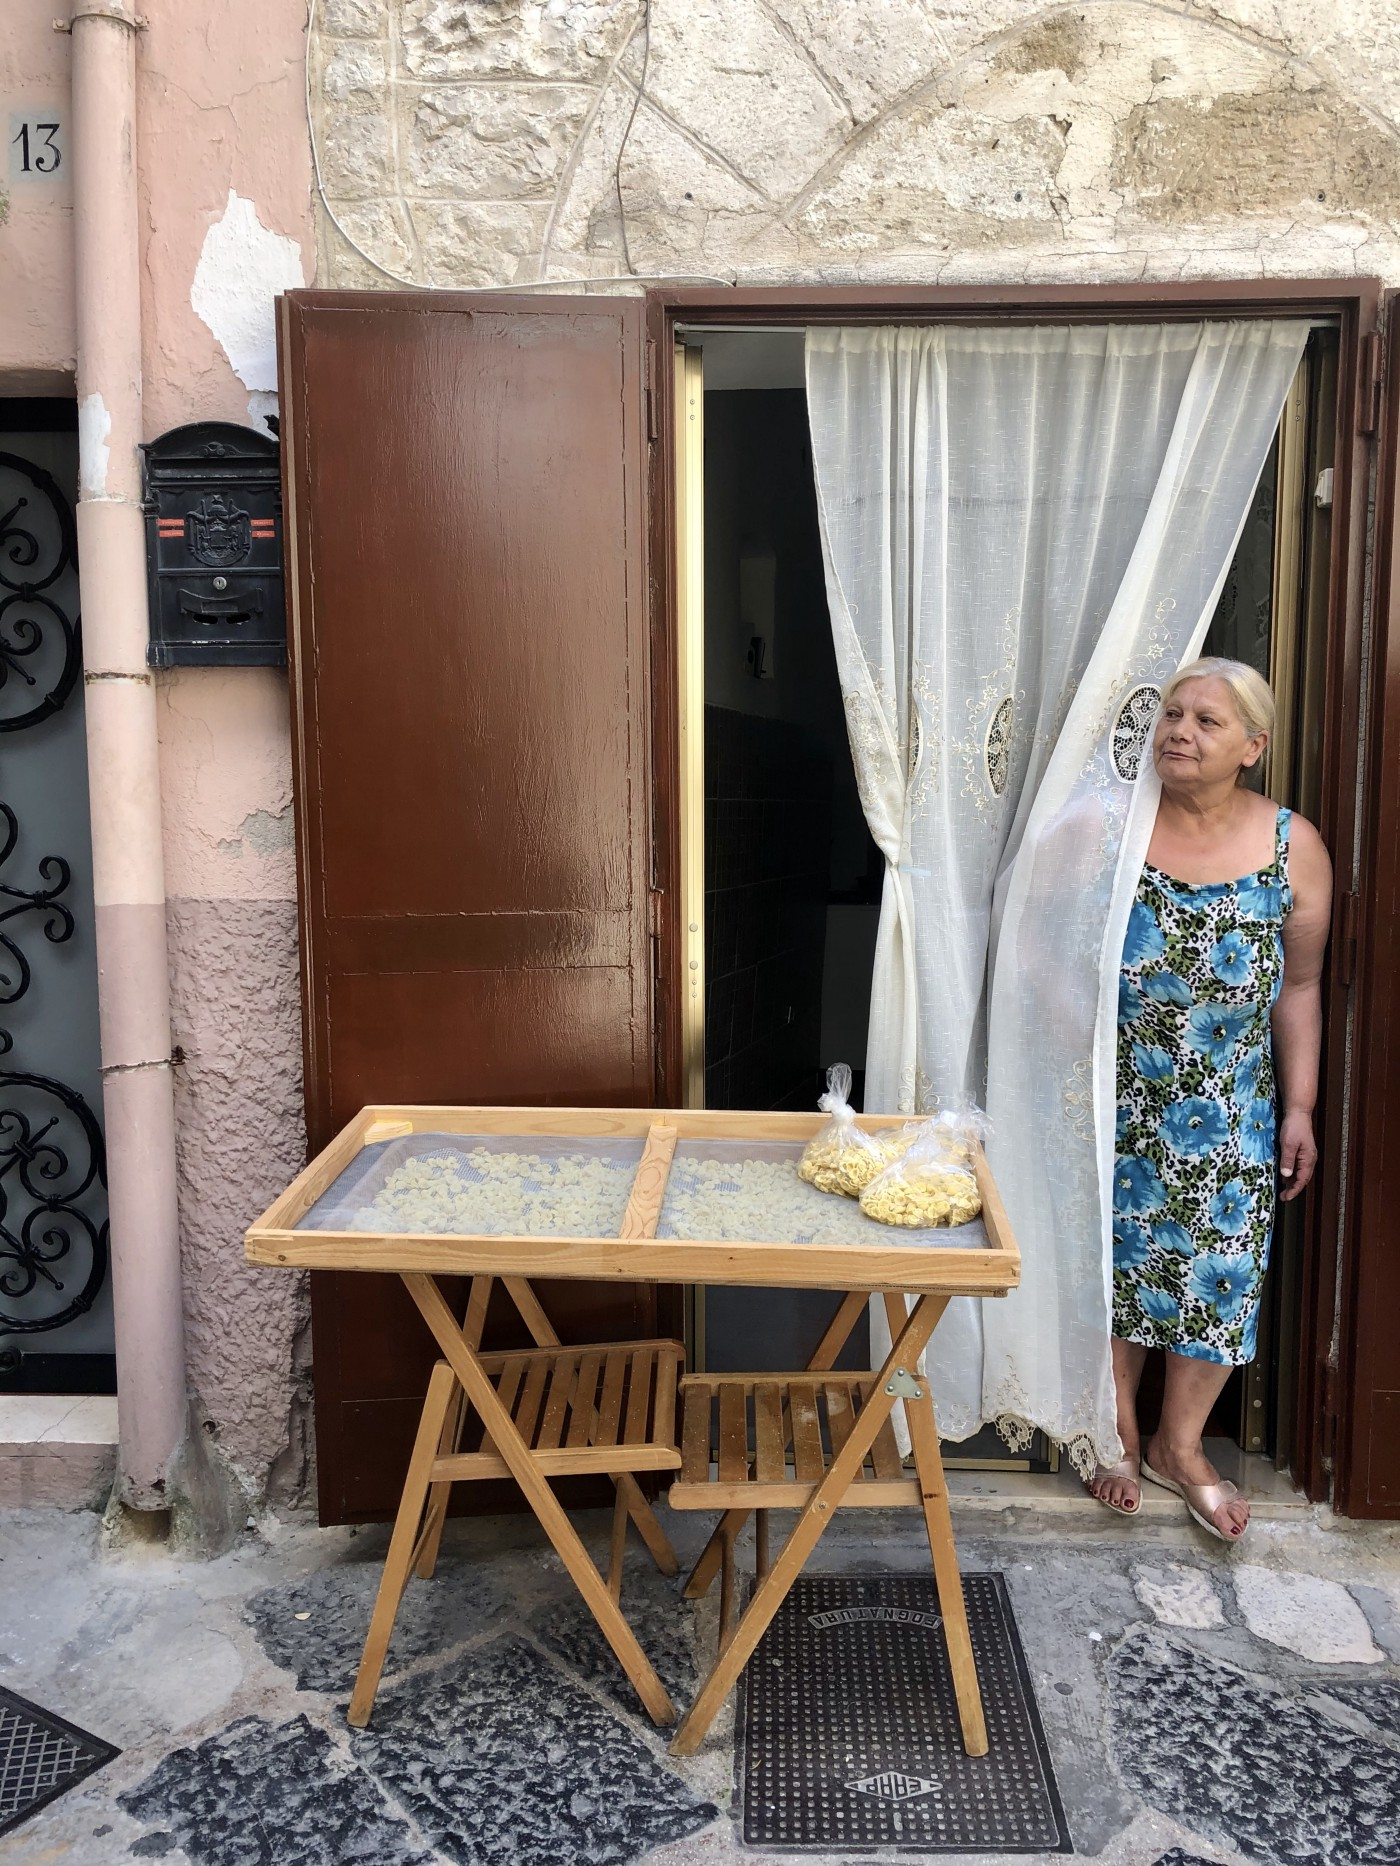 Pasqua, wearing a blue-and-green floral dress, peers around thin white curtains next to pasta laid out to dry outside.